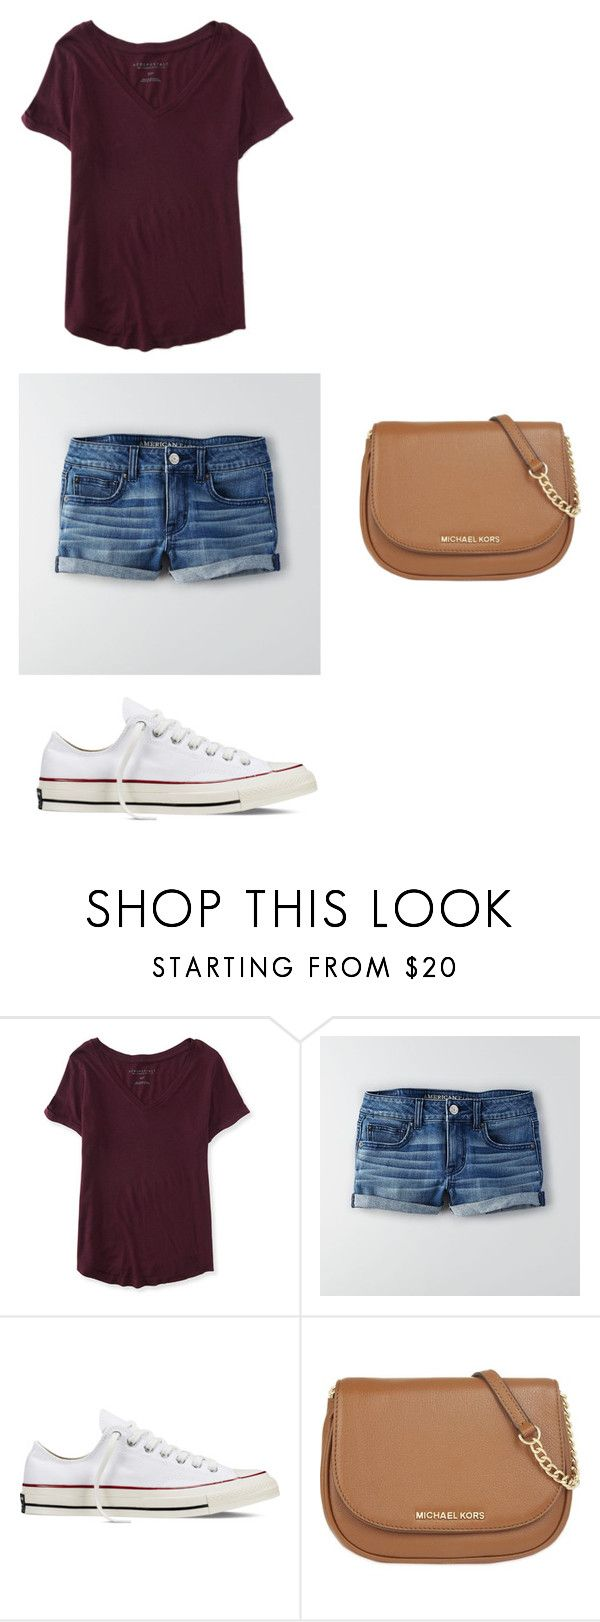 Best 25+ Outfits for spring ideas only on Pinterest | Cute spring ...